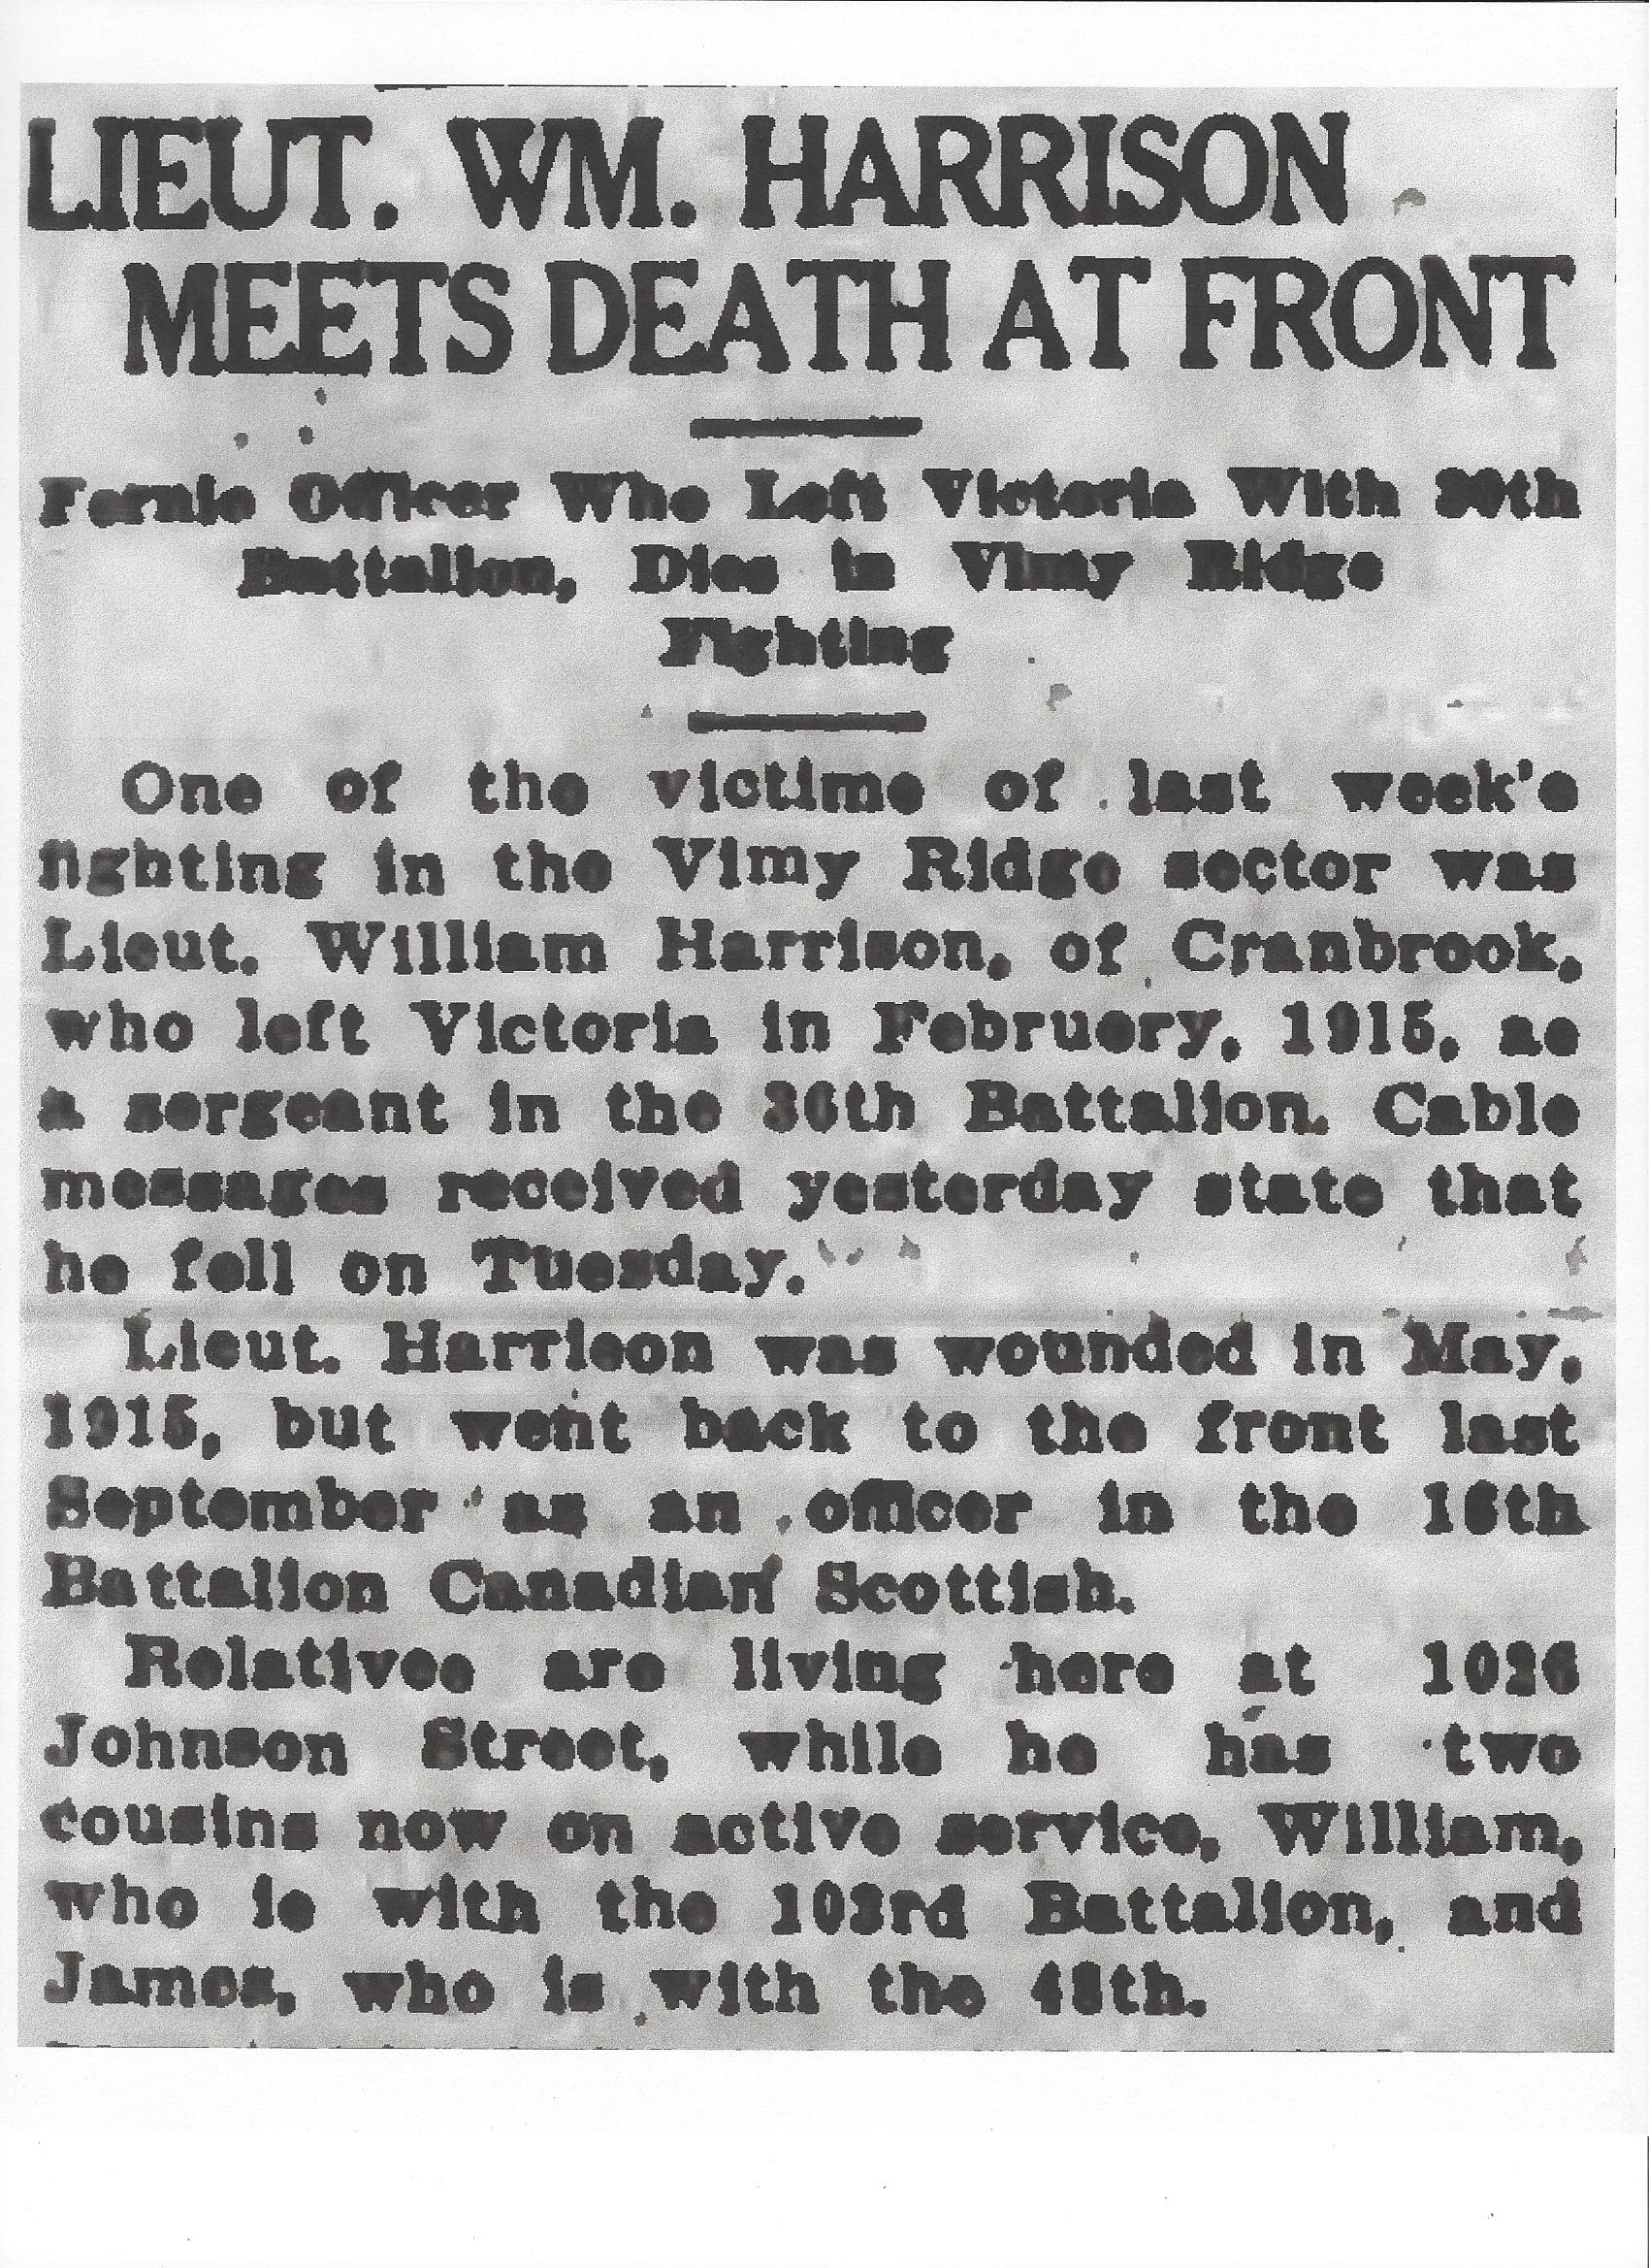 Newspaper clipping – From the Daily Colonist of April 21, 1917. Image taken from web address of http://archive.org/stream/dailycolonist59y114uvic#page/n0/mode/1up